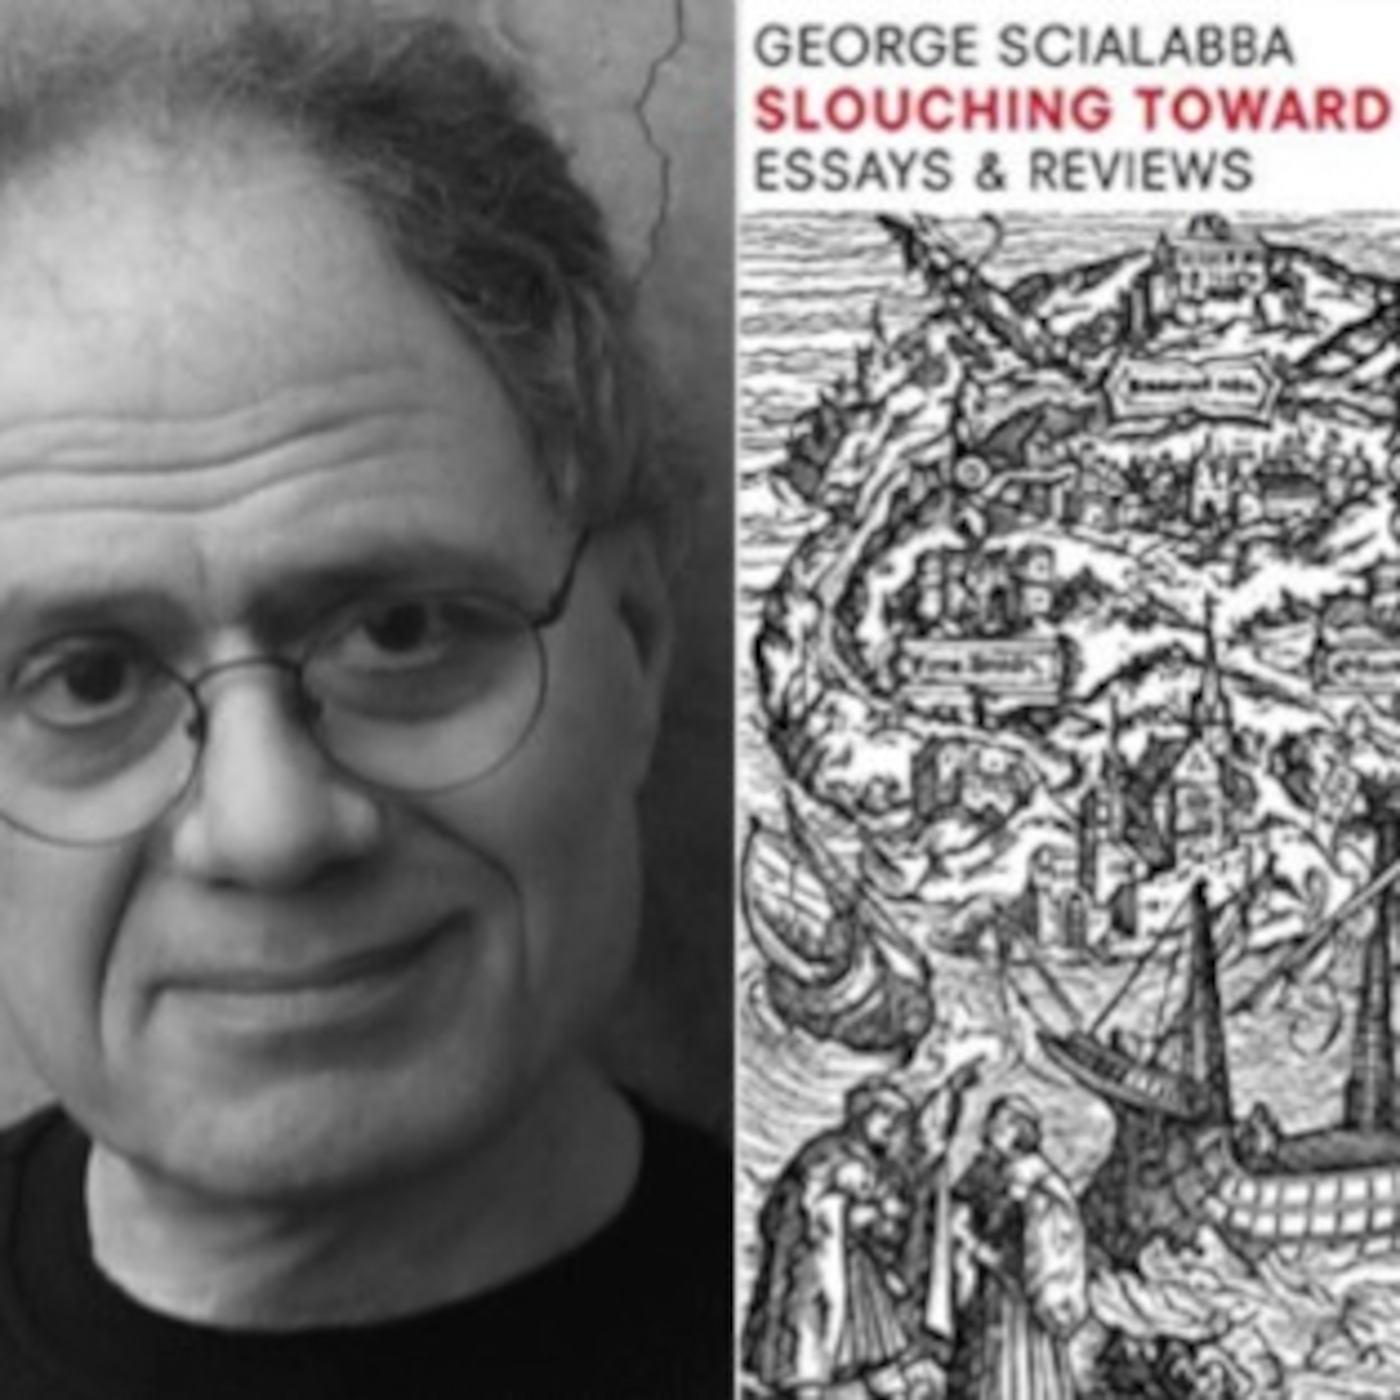 NEW - Reflecting On Big Questions With Essayist GEORGE SCIALABBA